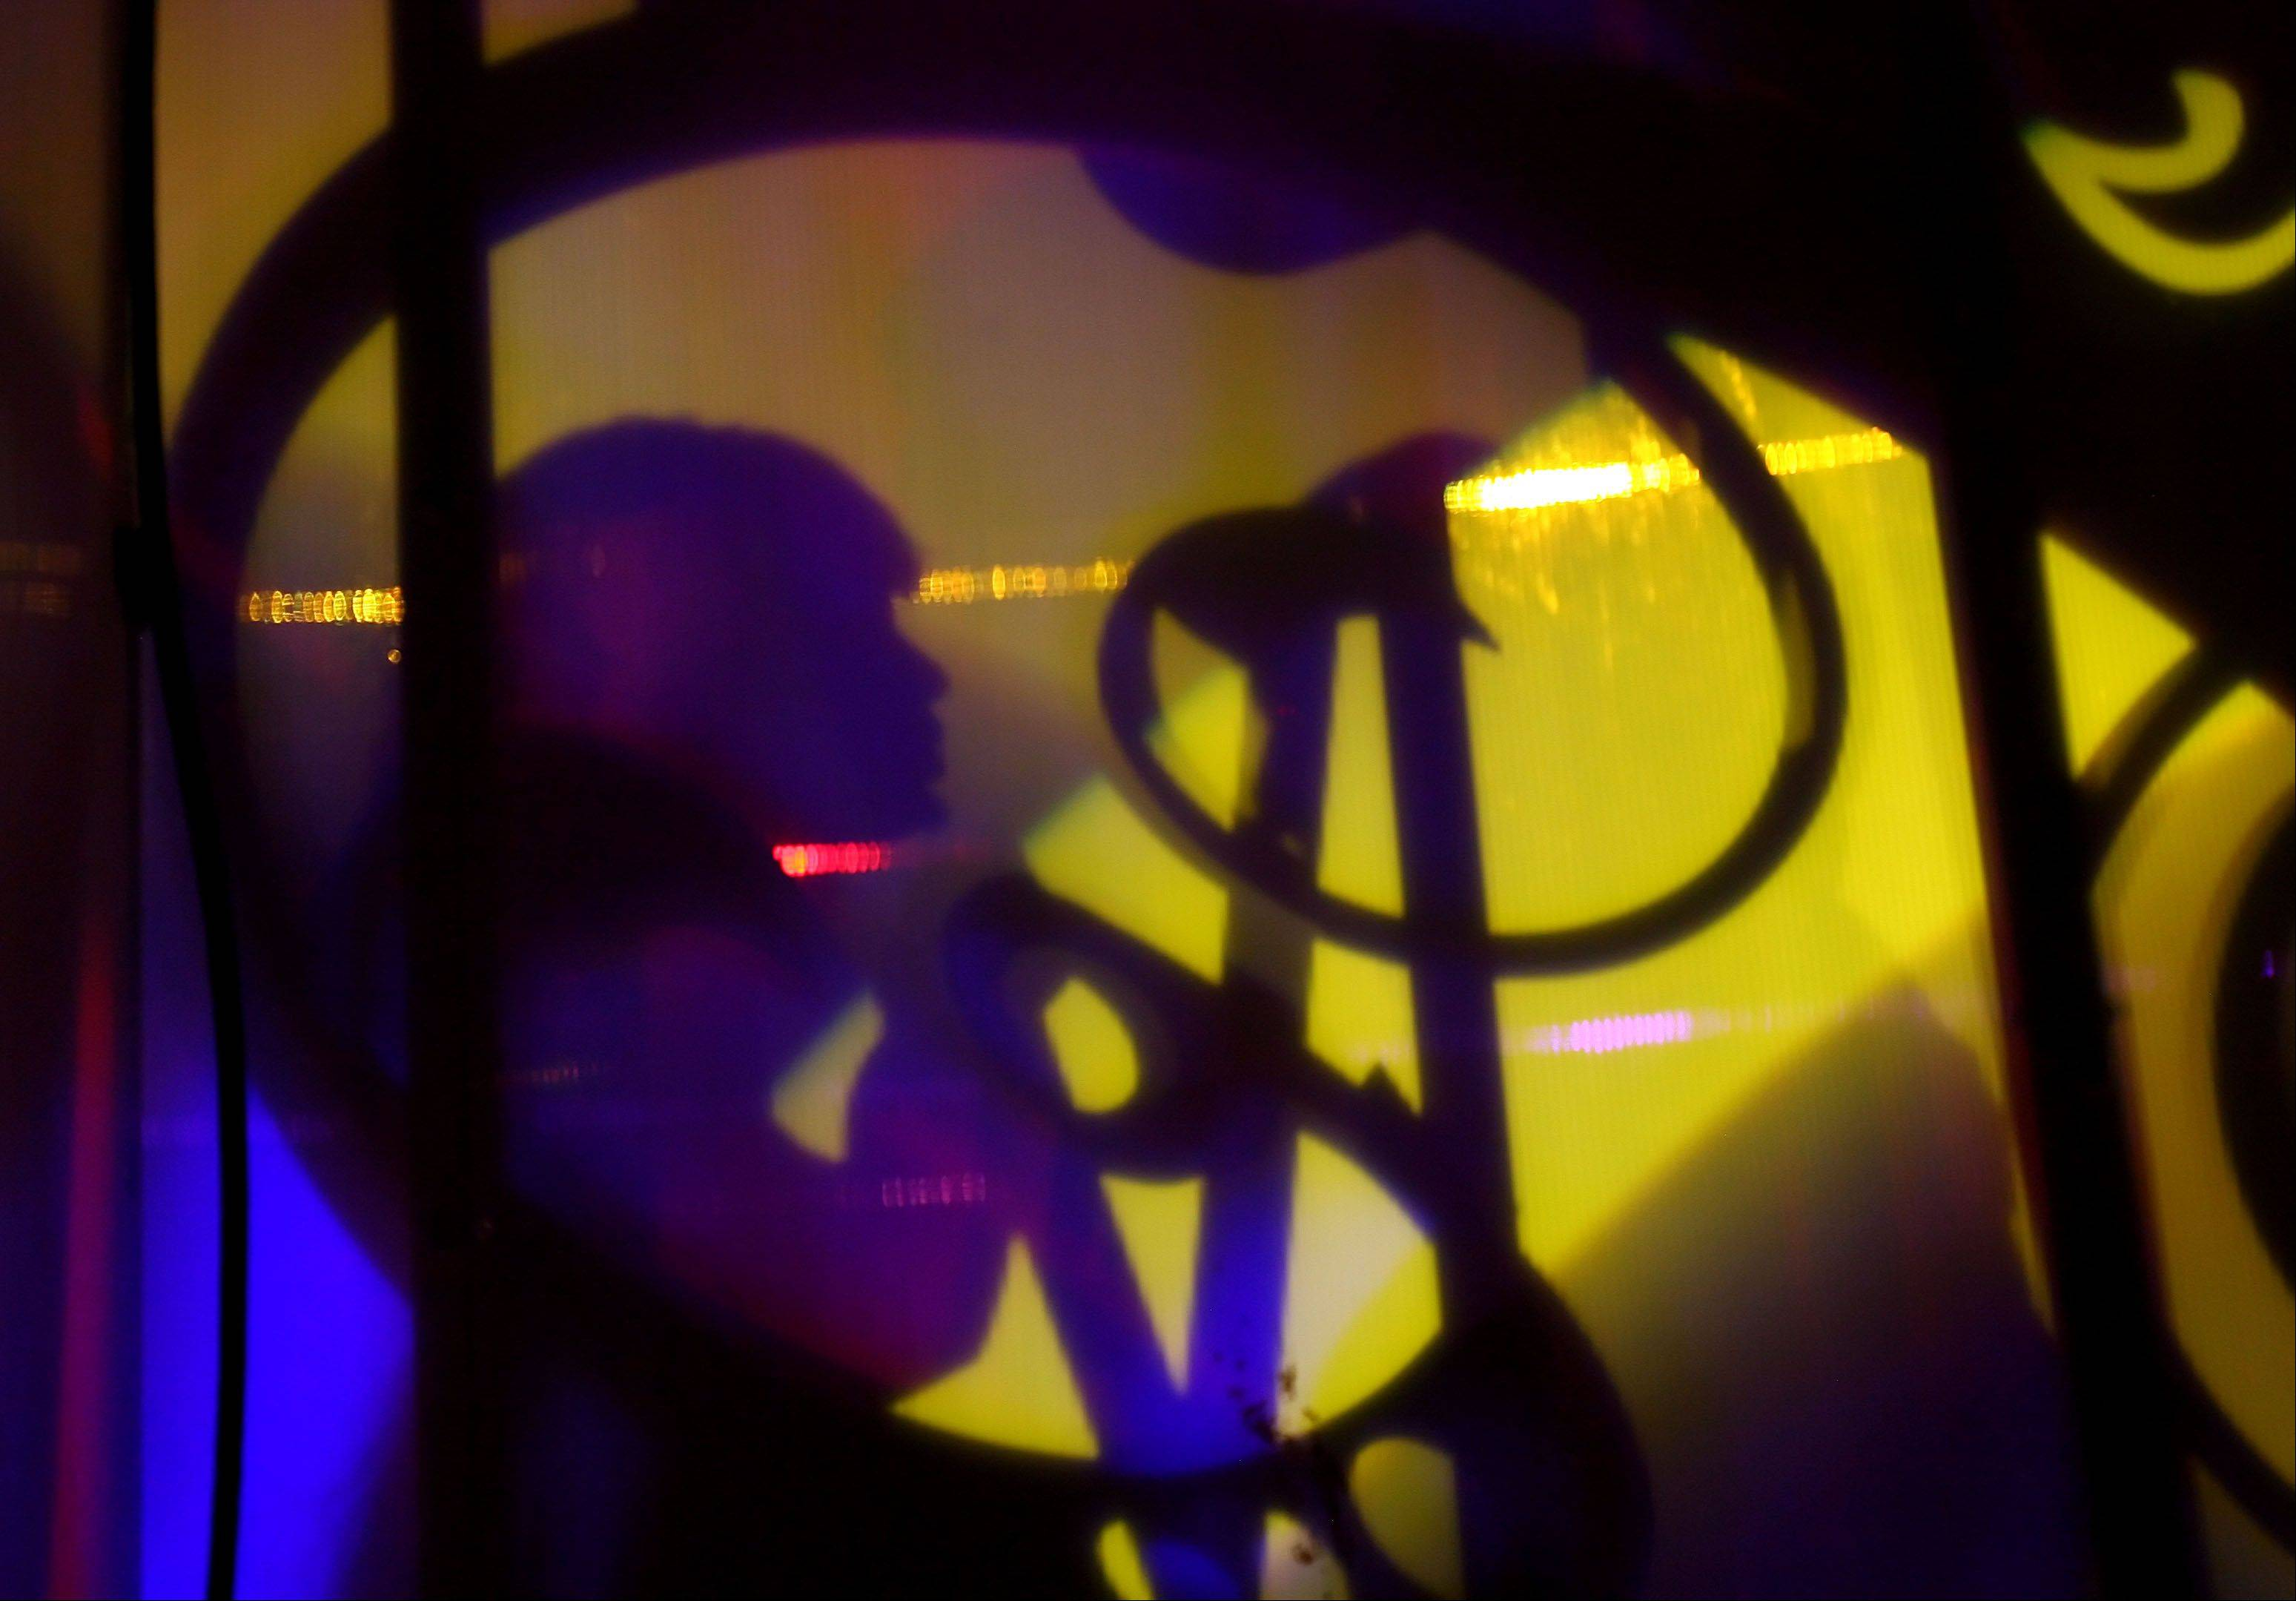 A cast member is silhouetted against the stage background during a production of Pop Fusion at Six Flags amusement park in Gurnee.